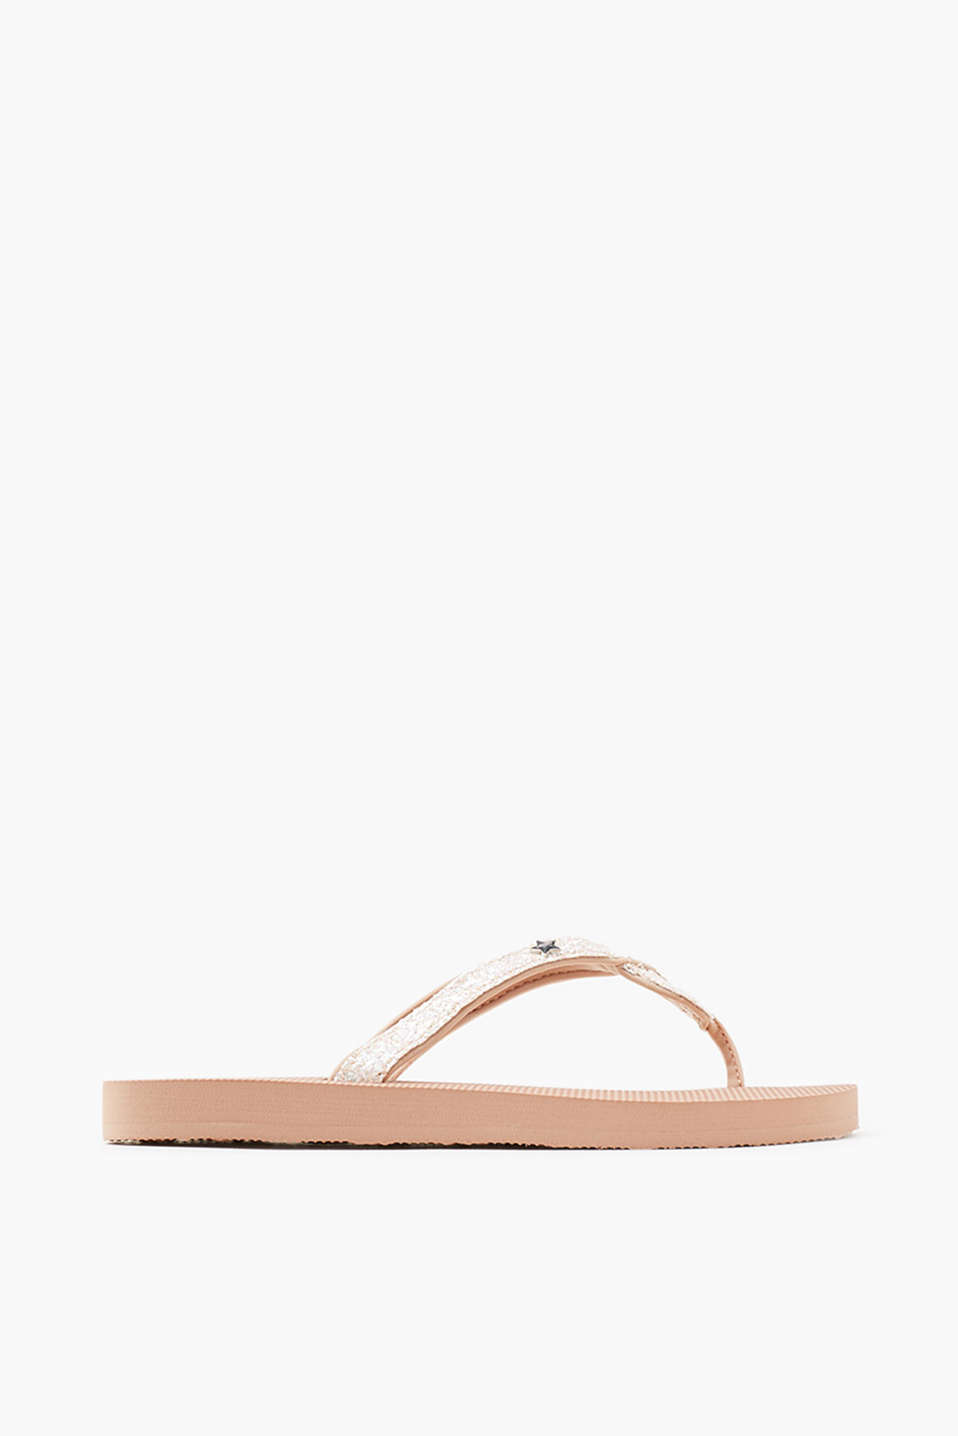 City slip slops with pretty woven straps